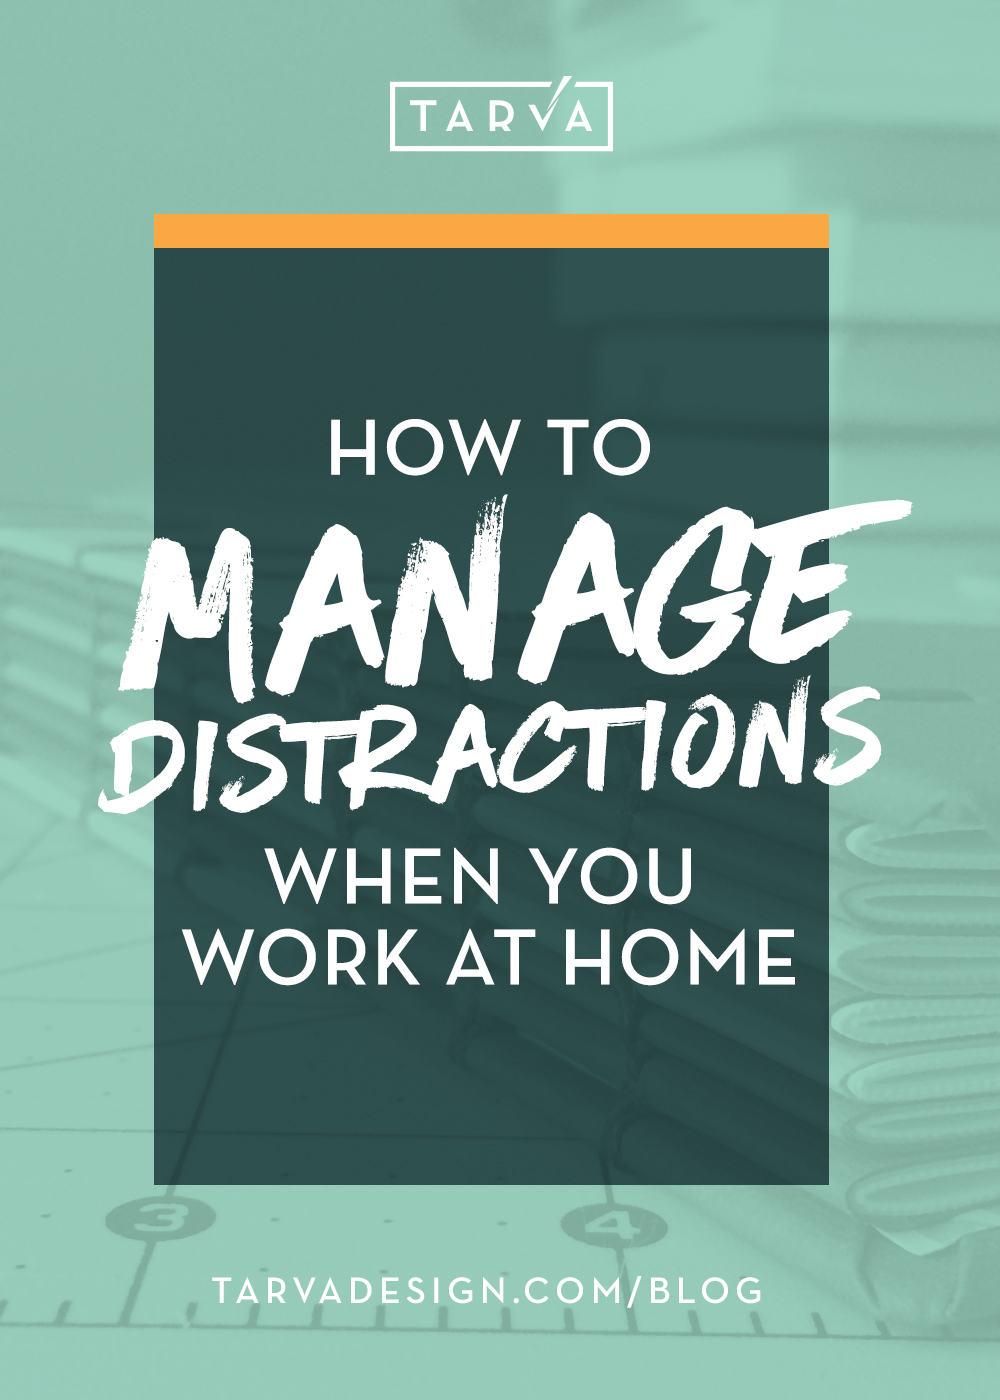 Tarva+Design+Studio_How+to+Manage+Distractions when+you+work+at+home.jpg